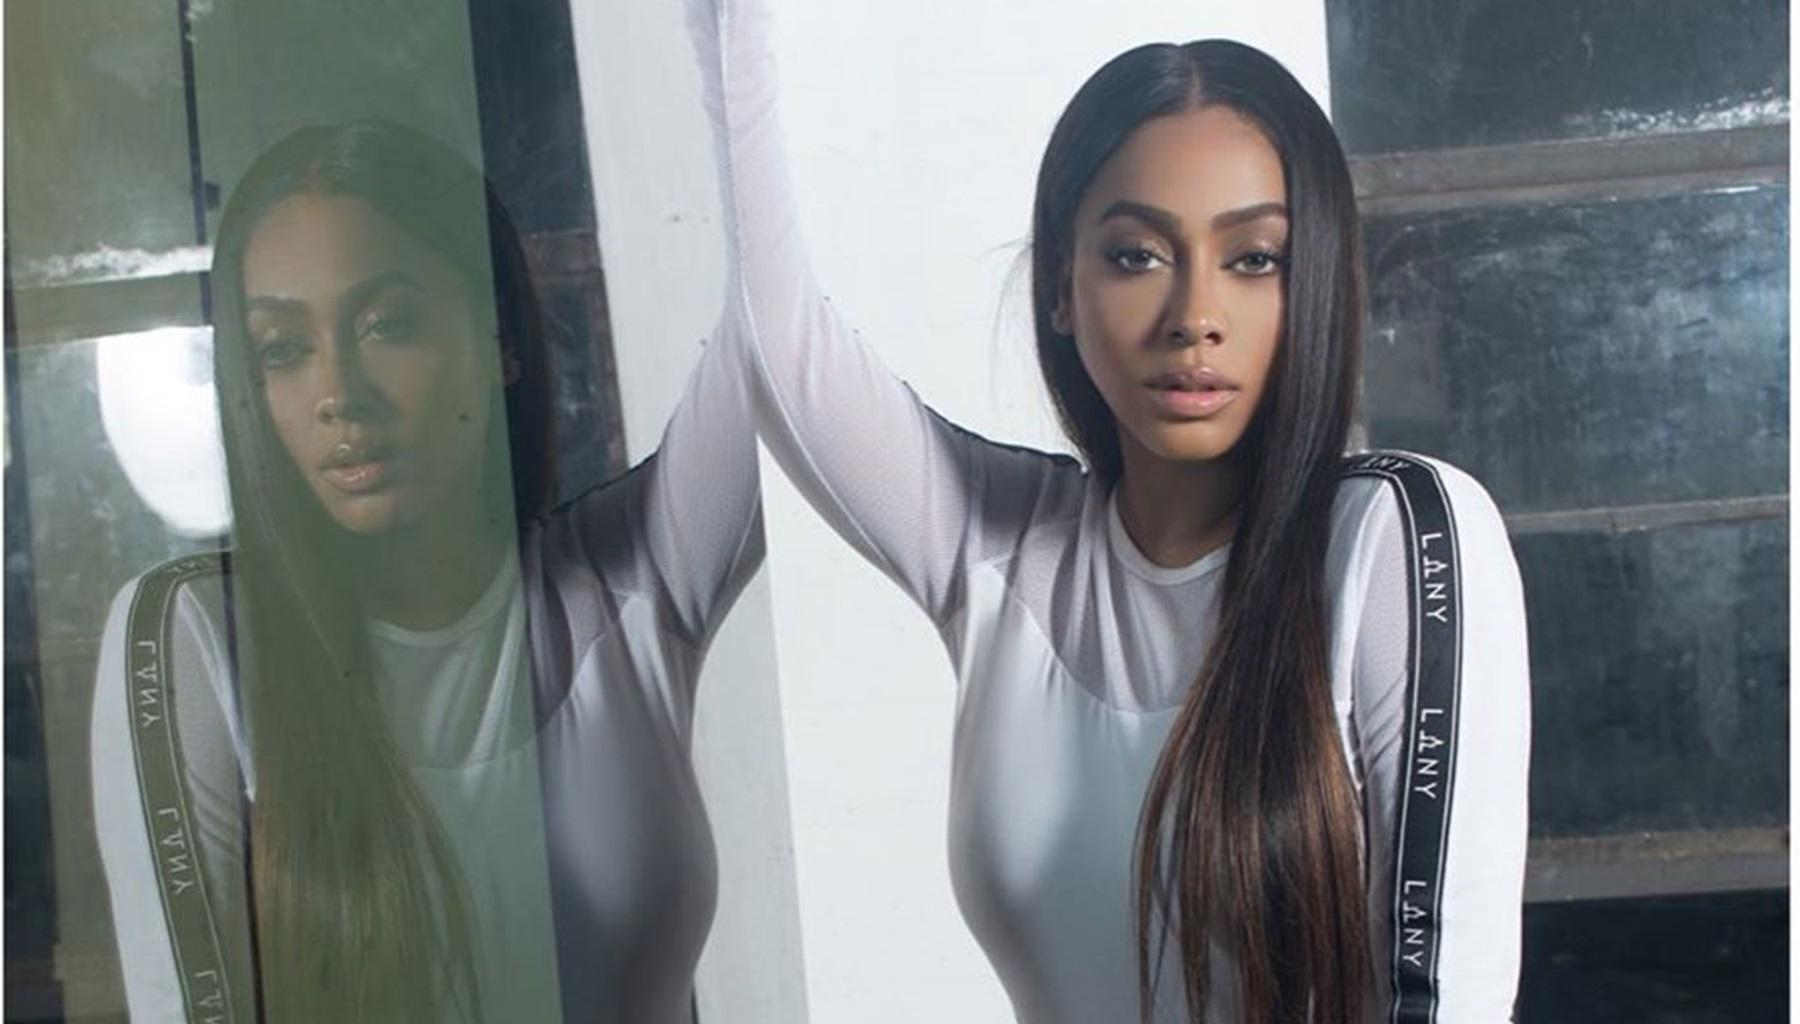 La La Anthony Fires Back In New Video At People Accusing Her Of Having No Acting Skills